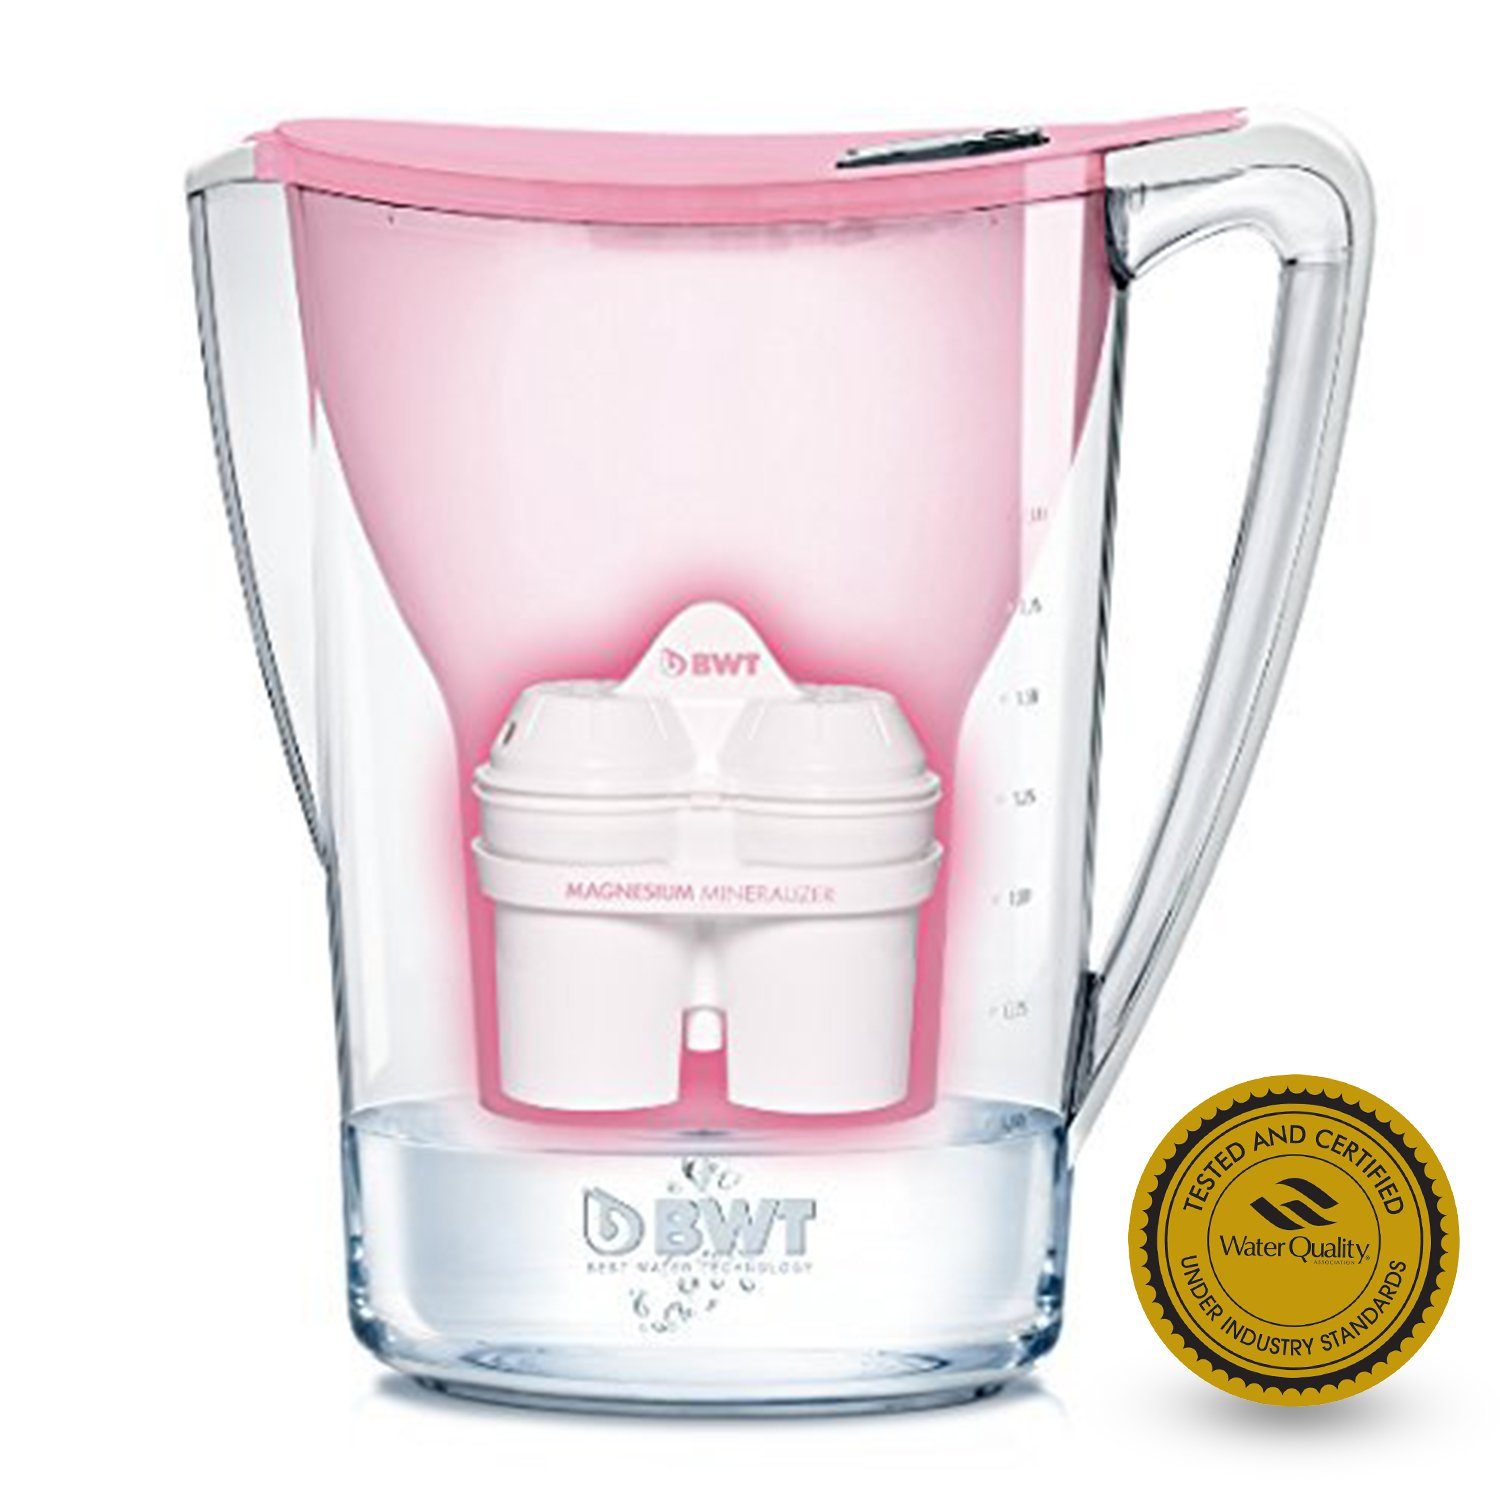 Top 10 Best Jug Water Filters And Pitchers 2018 2019 On